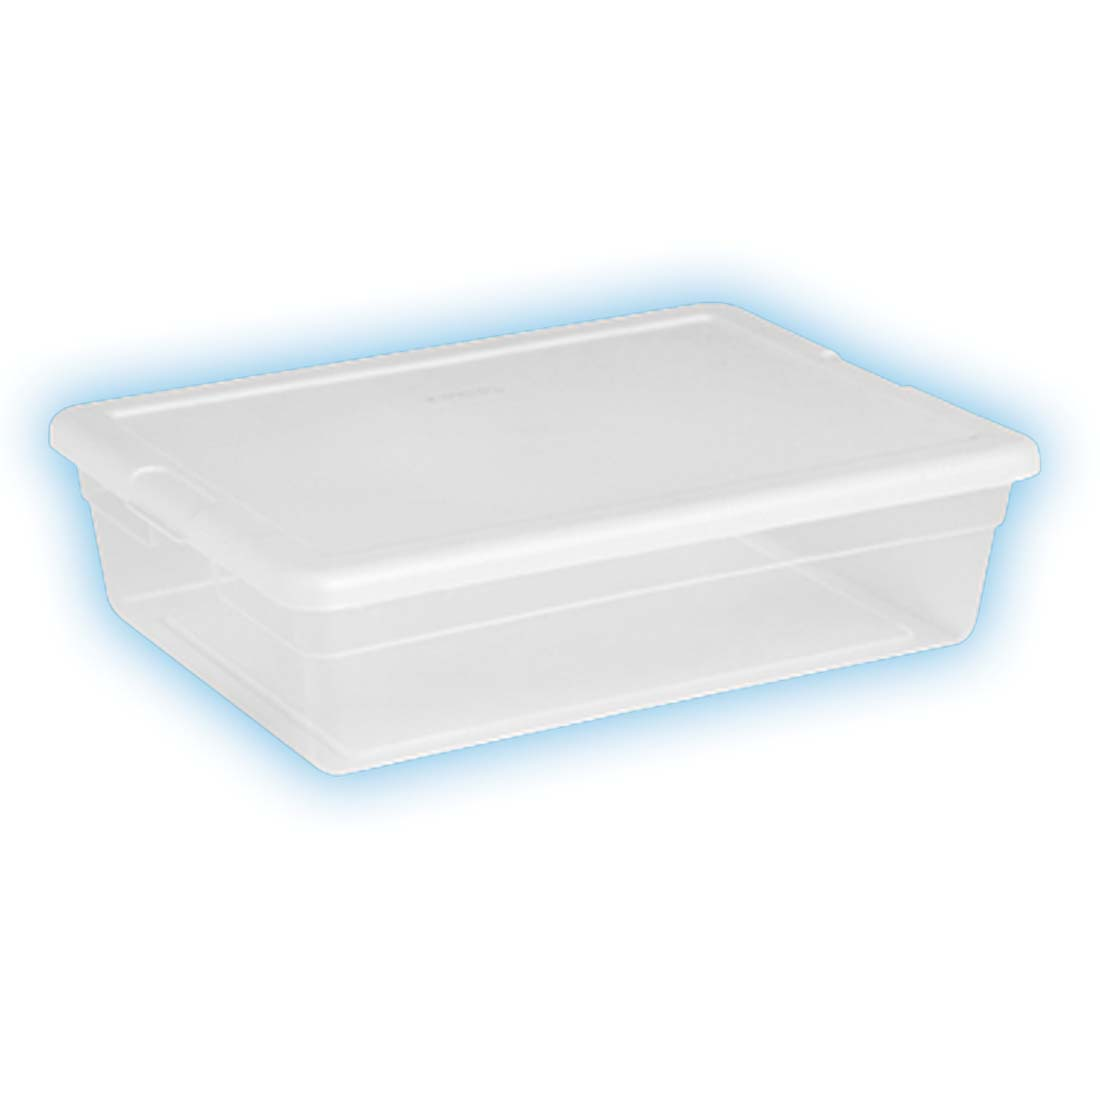 View STERILITE STORAGE BOX 23 X 16.25 X 6 INCH 28 QUART ** MADE IN USA **